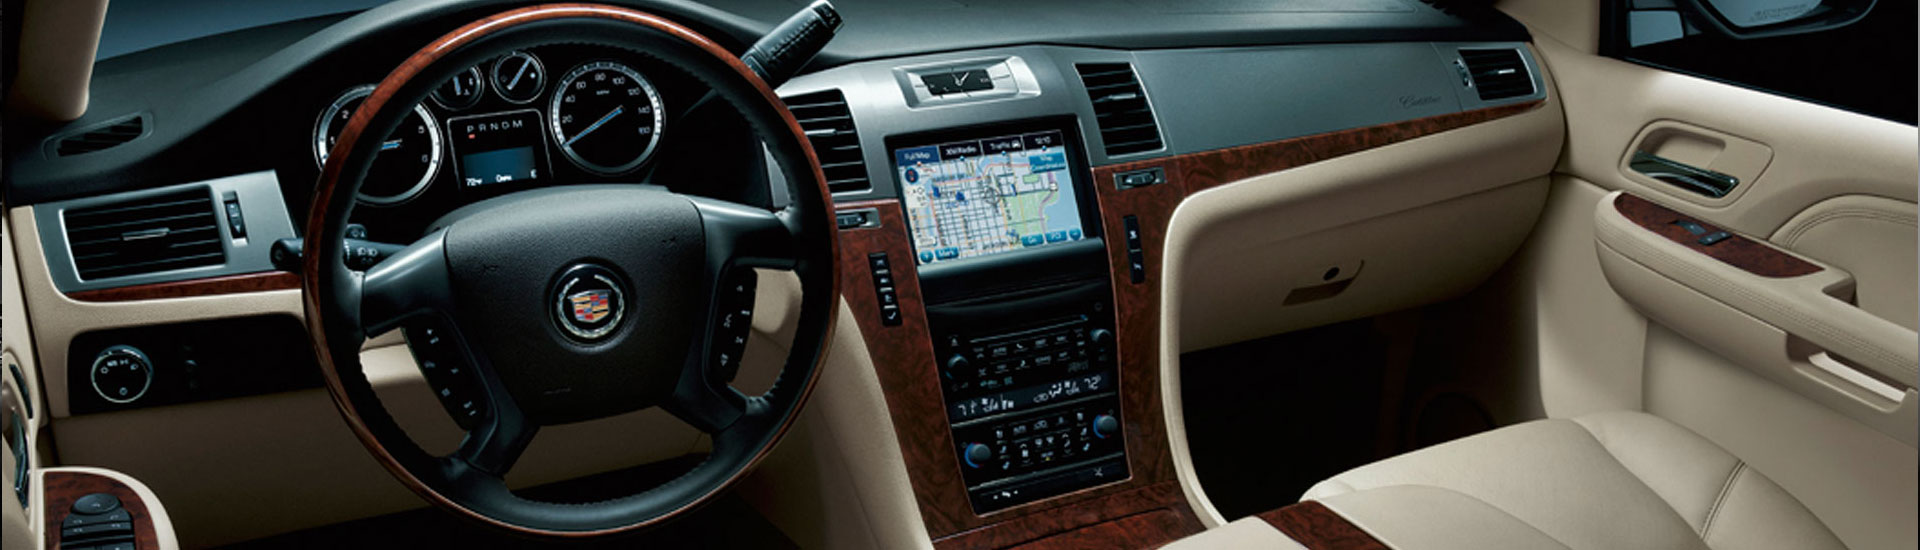 Cadillac Escalade Dash Kits